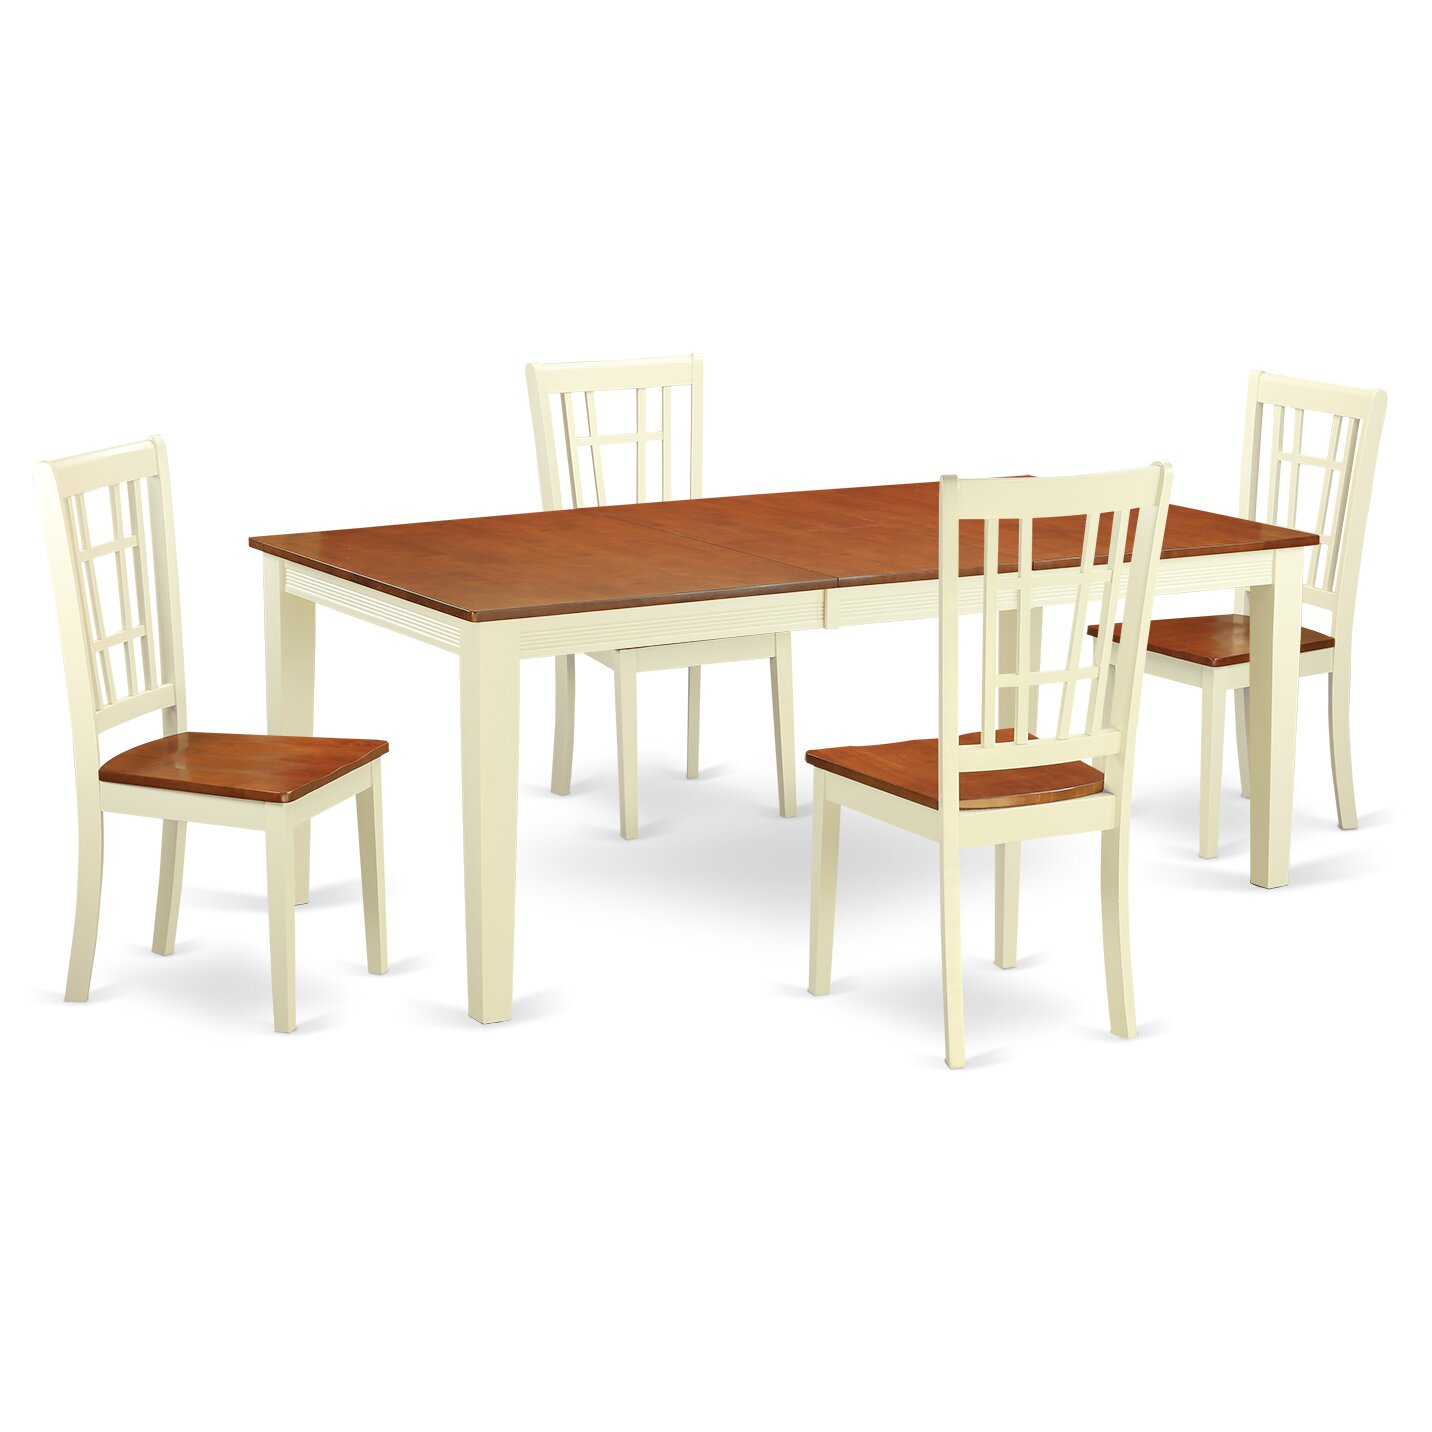 East west quincy 5 piece dining set wayfair for 4 piece dining table set